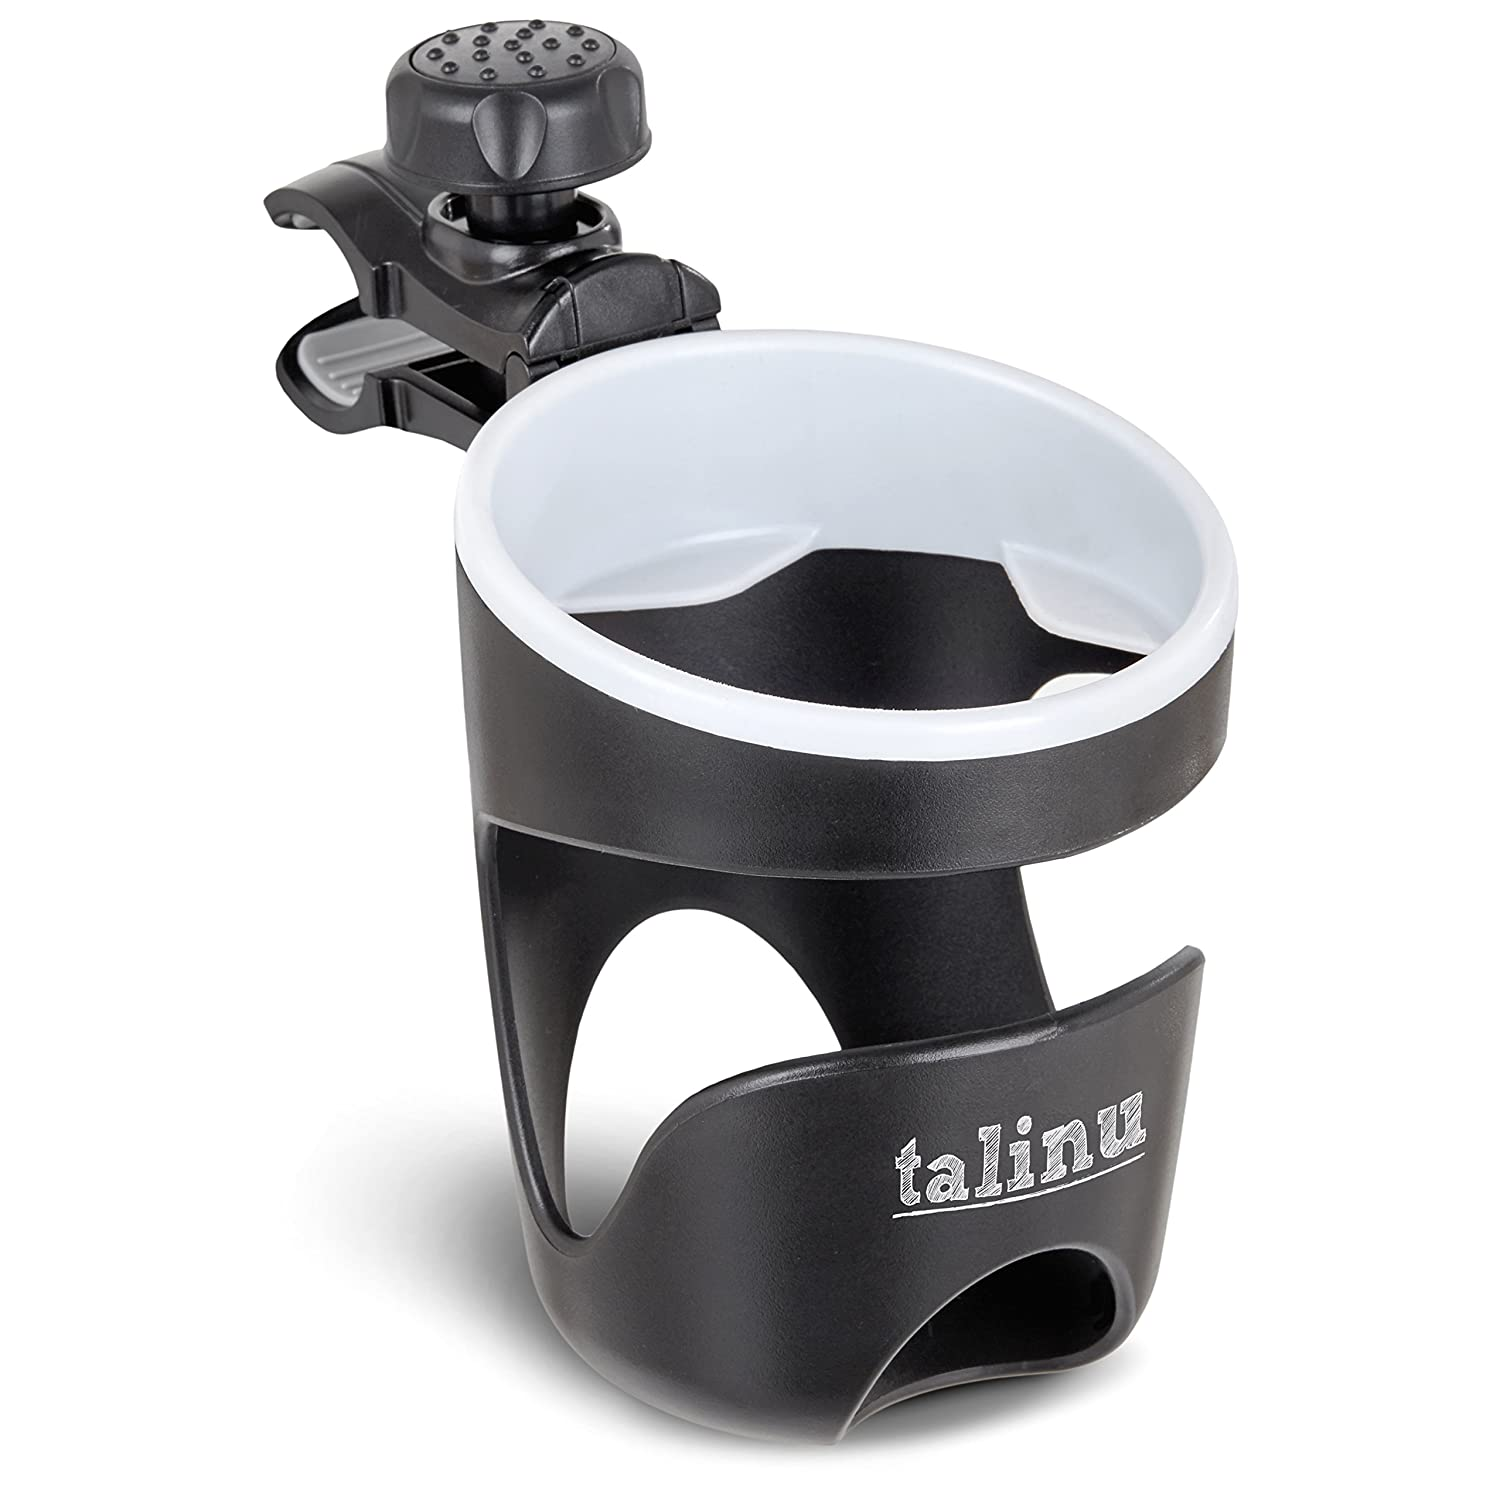 TALINU Stroller Cup Holder eSpring GmbH